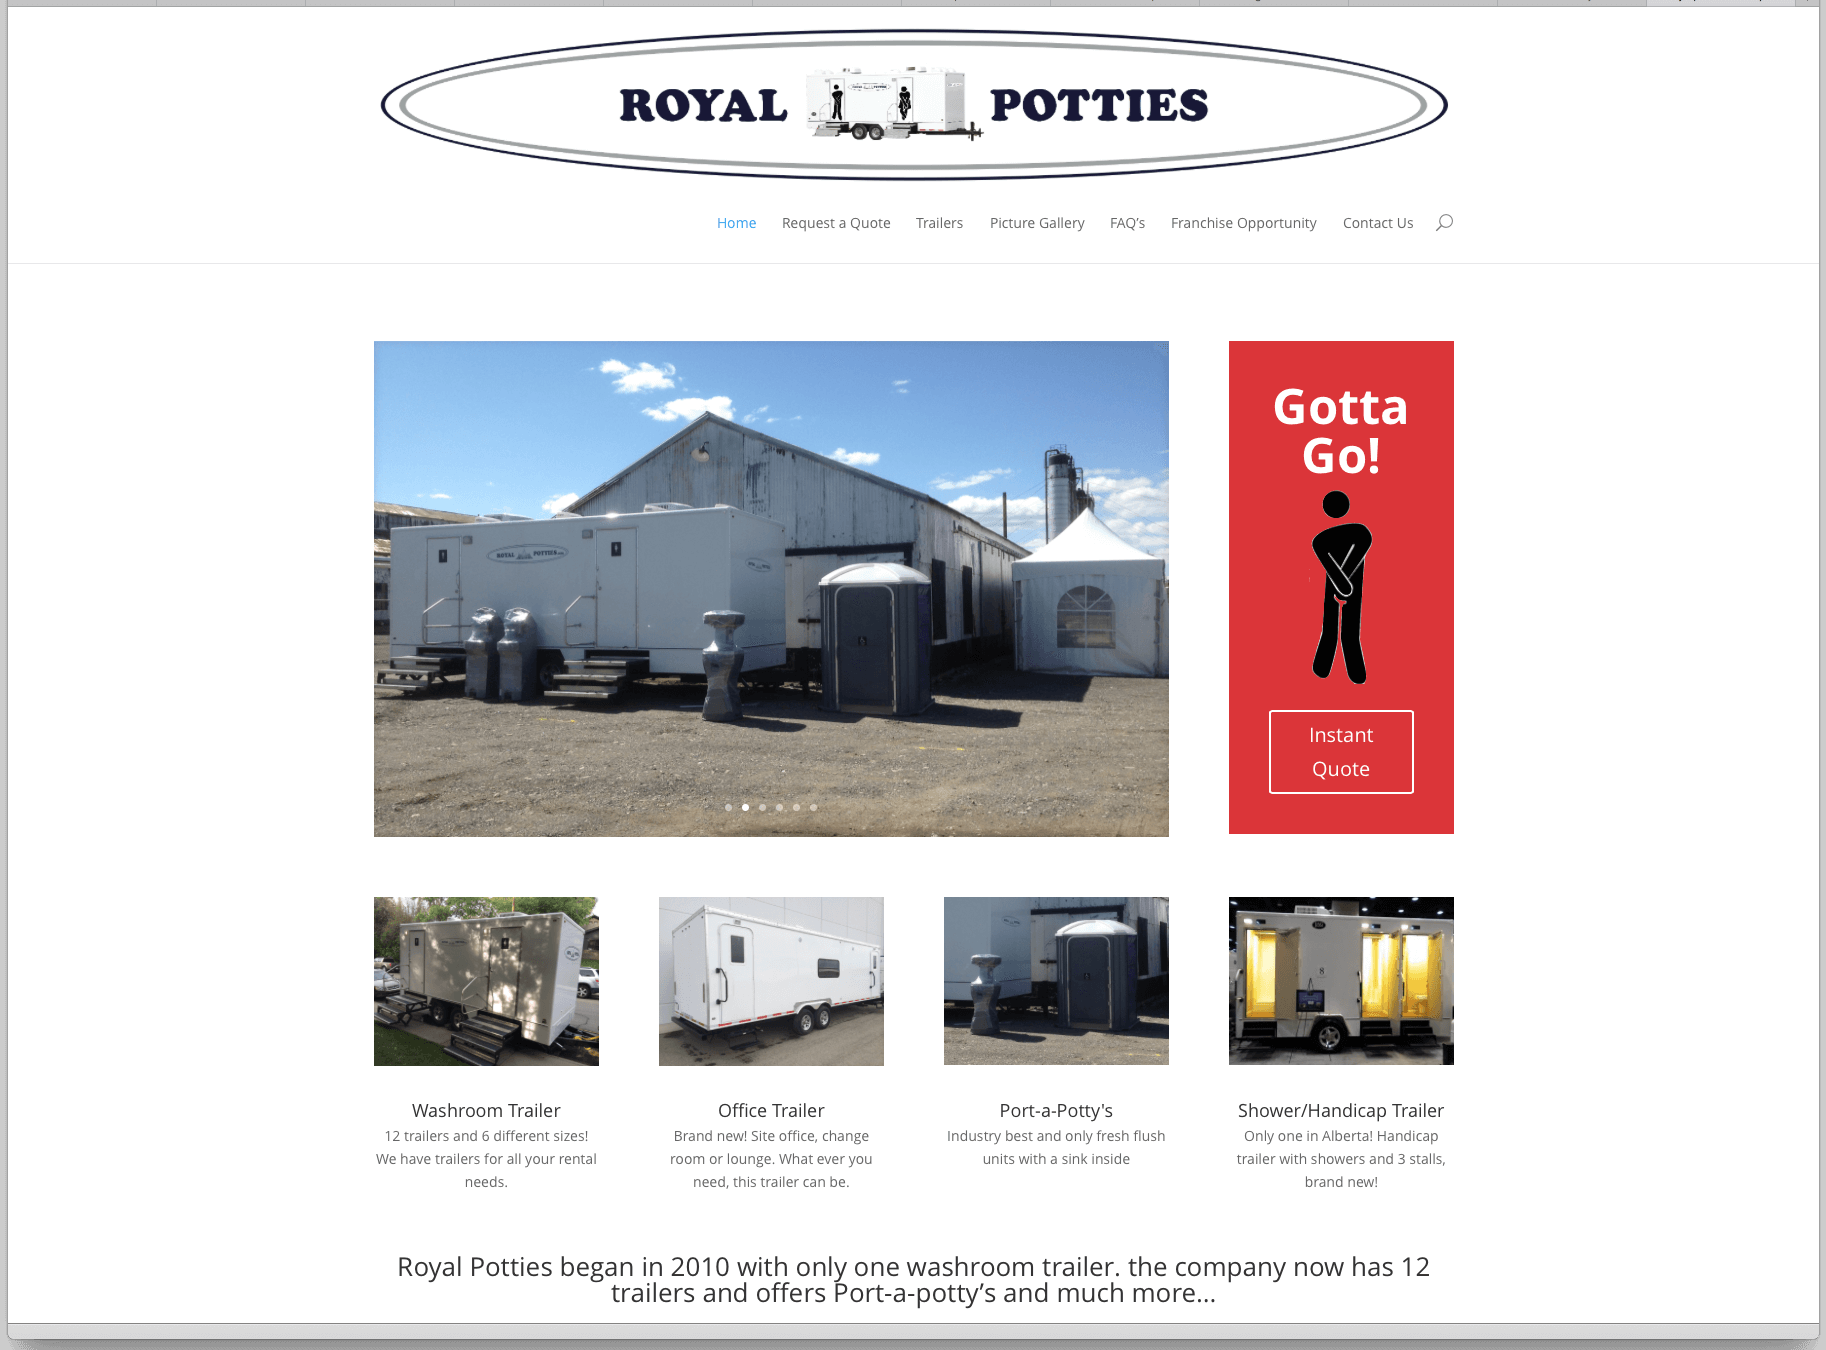 Royal Potties